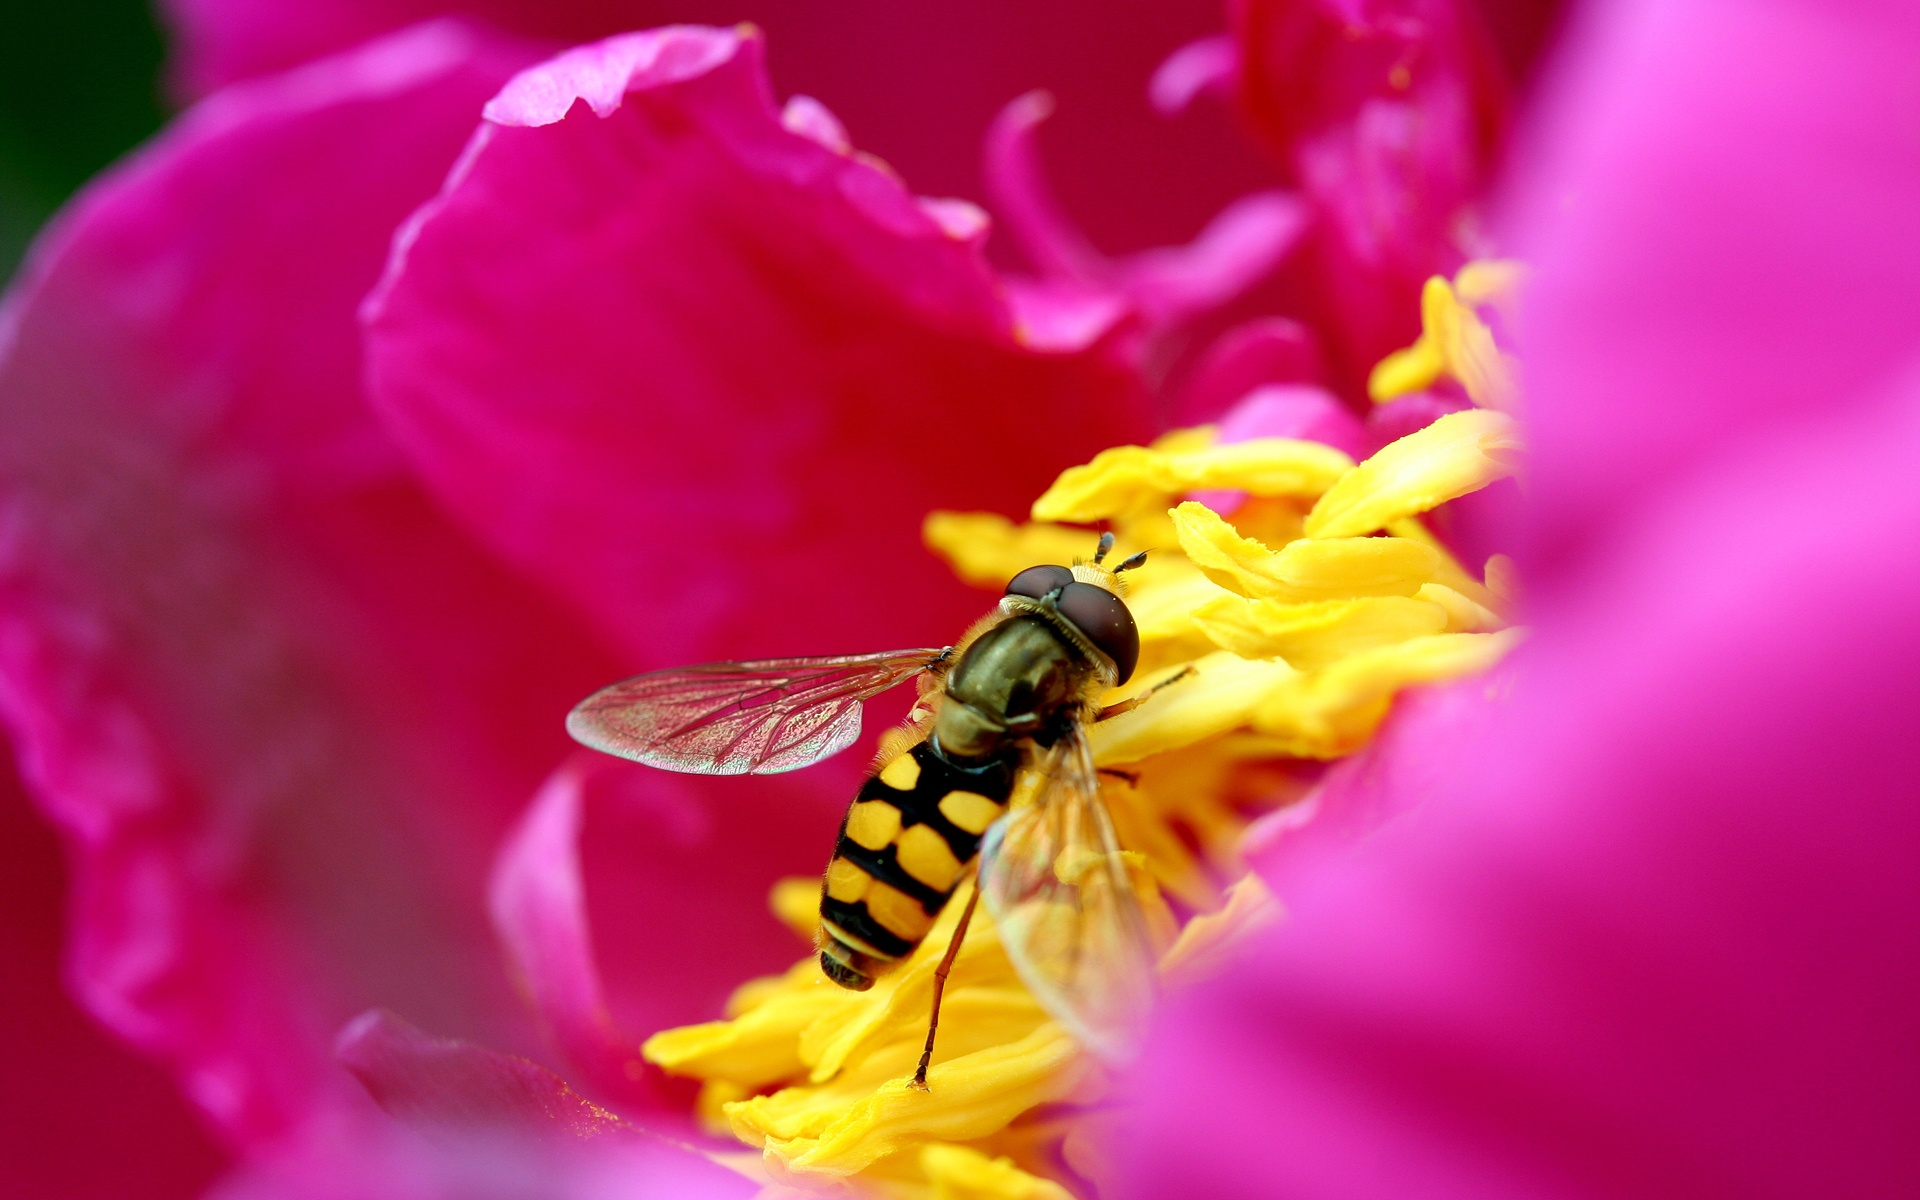 Bee Flower In Hd Wallpapers In Jpg Format For Free Download